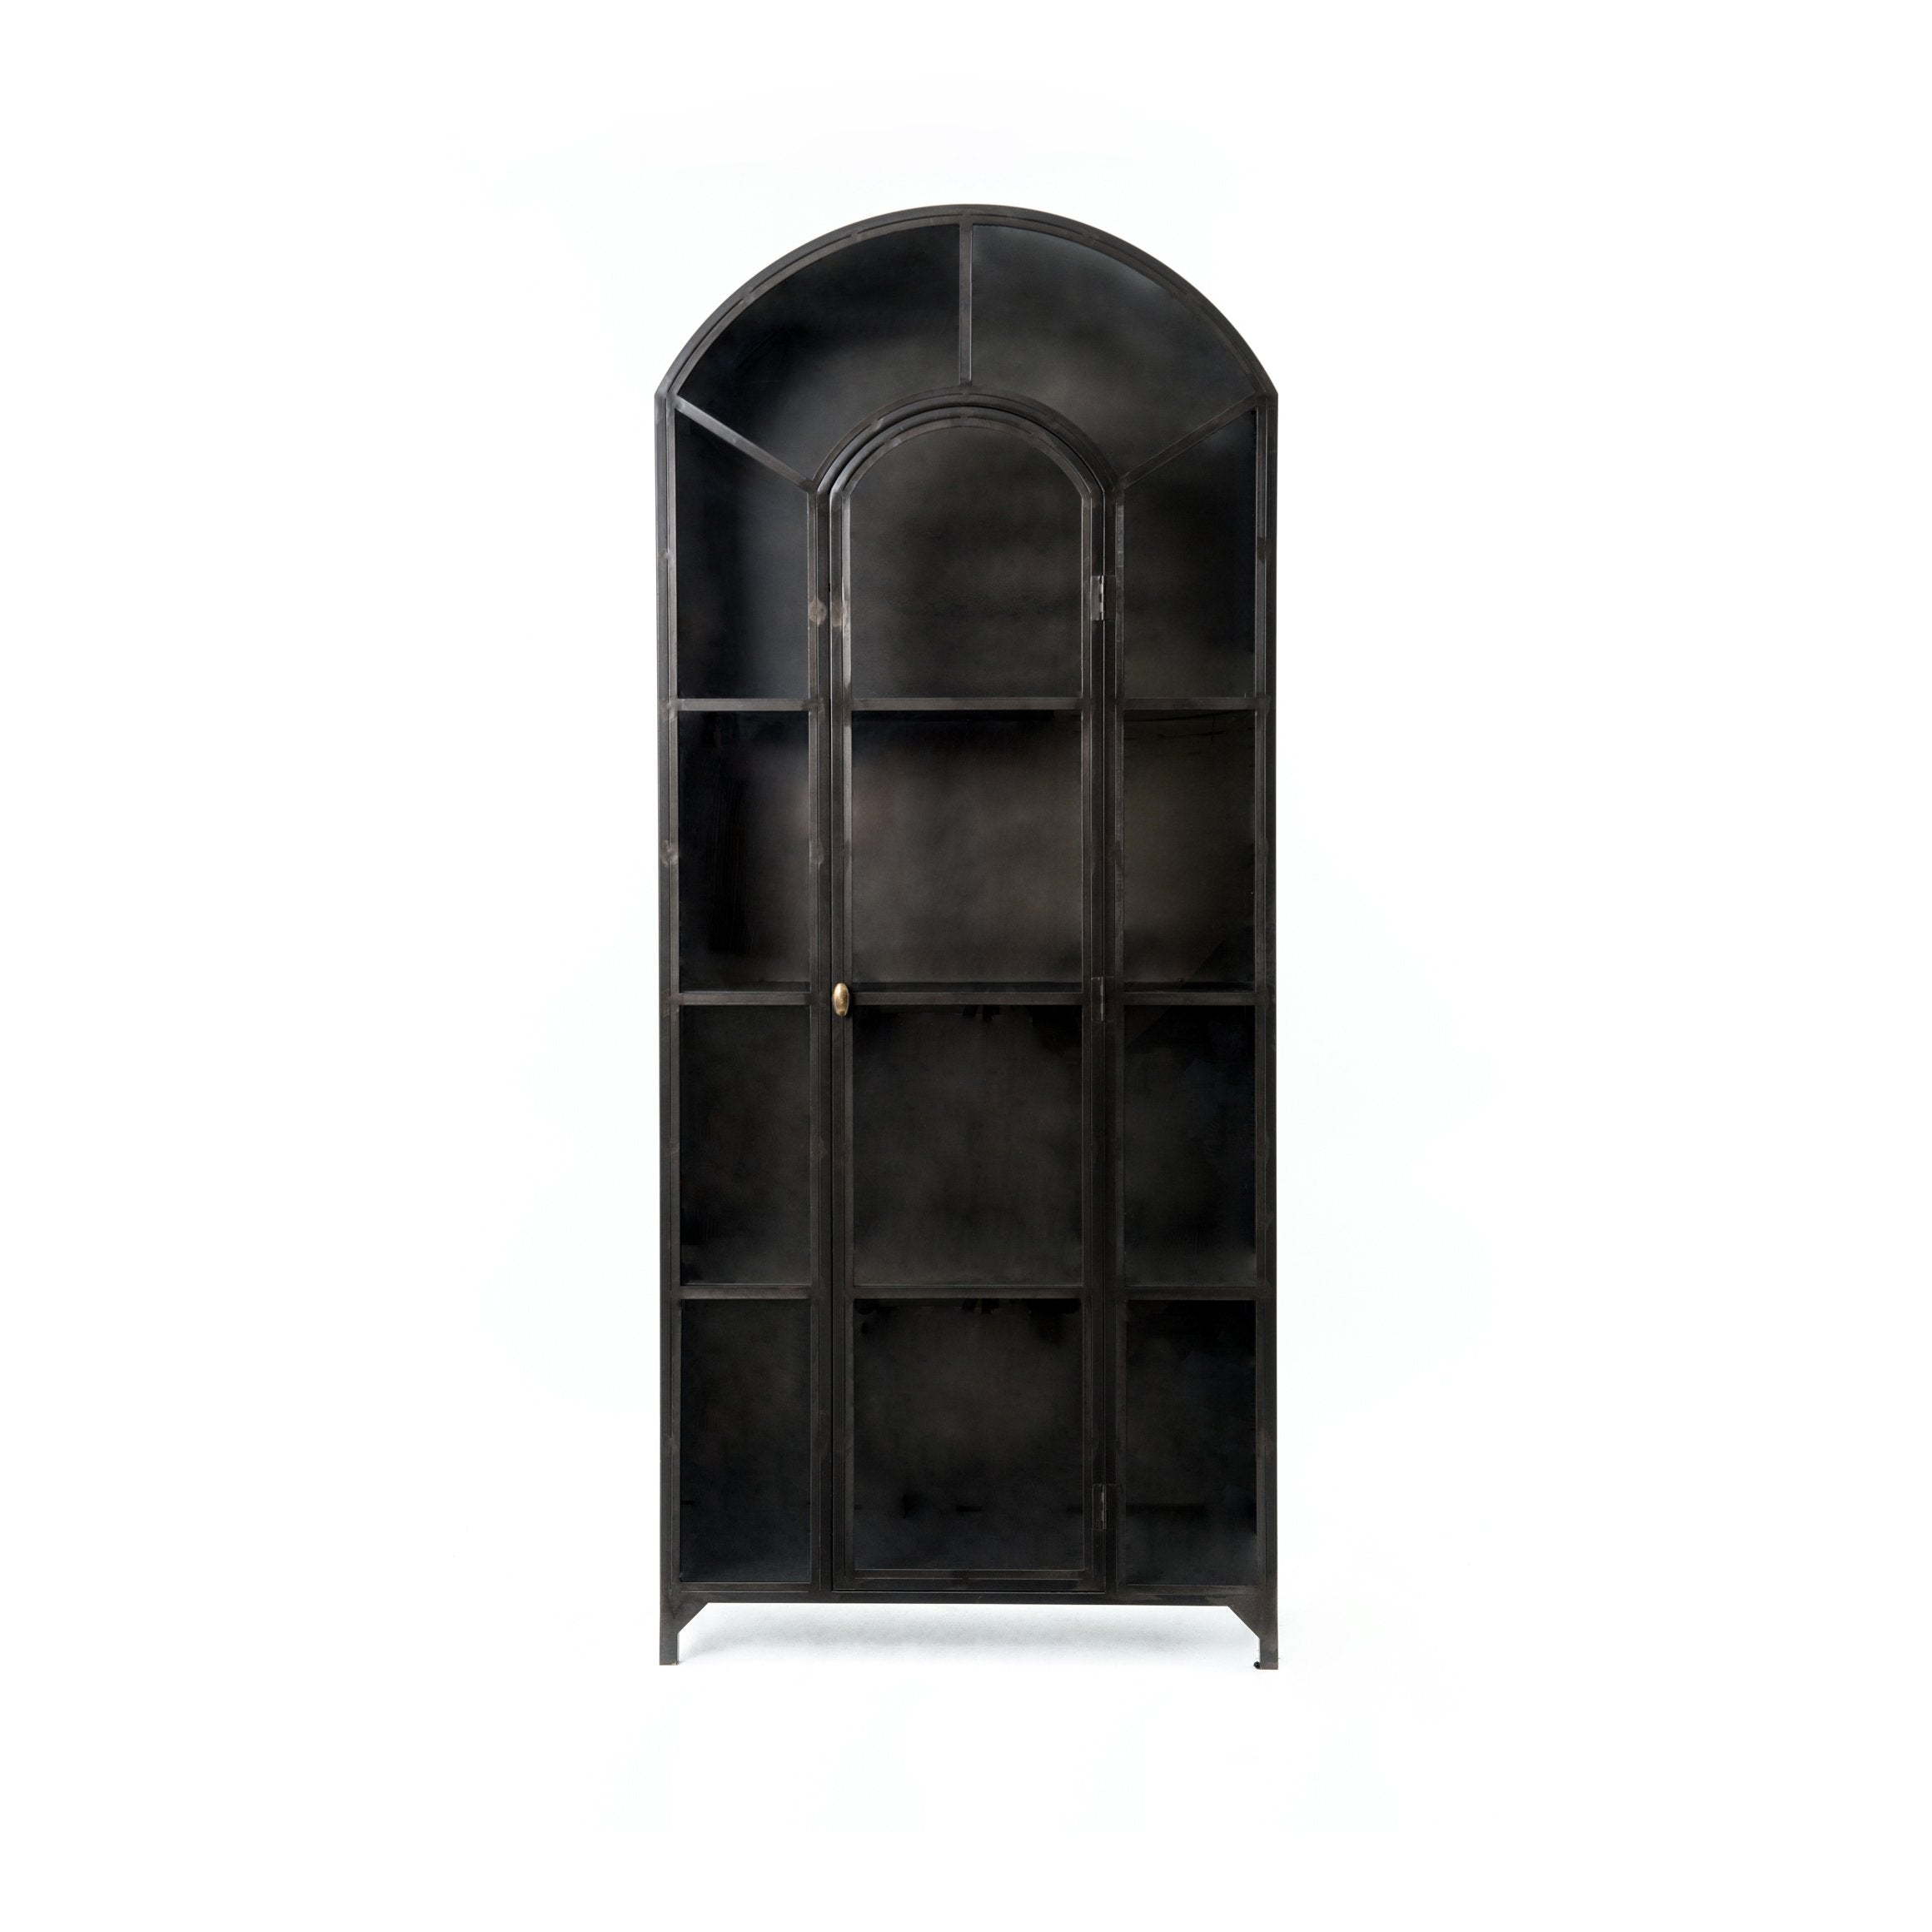 Belmont Metal Cabinet in Black